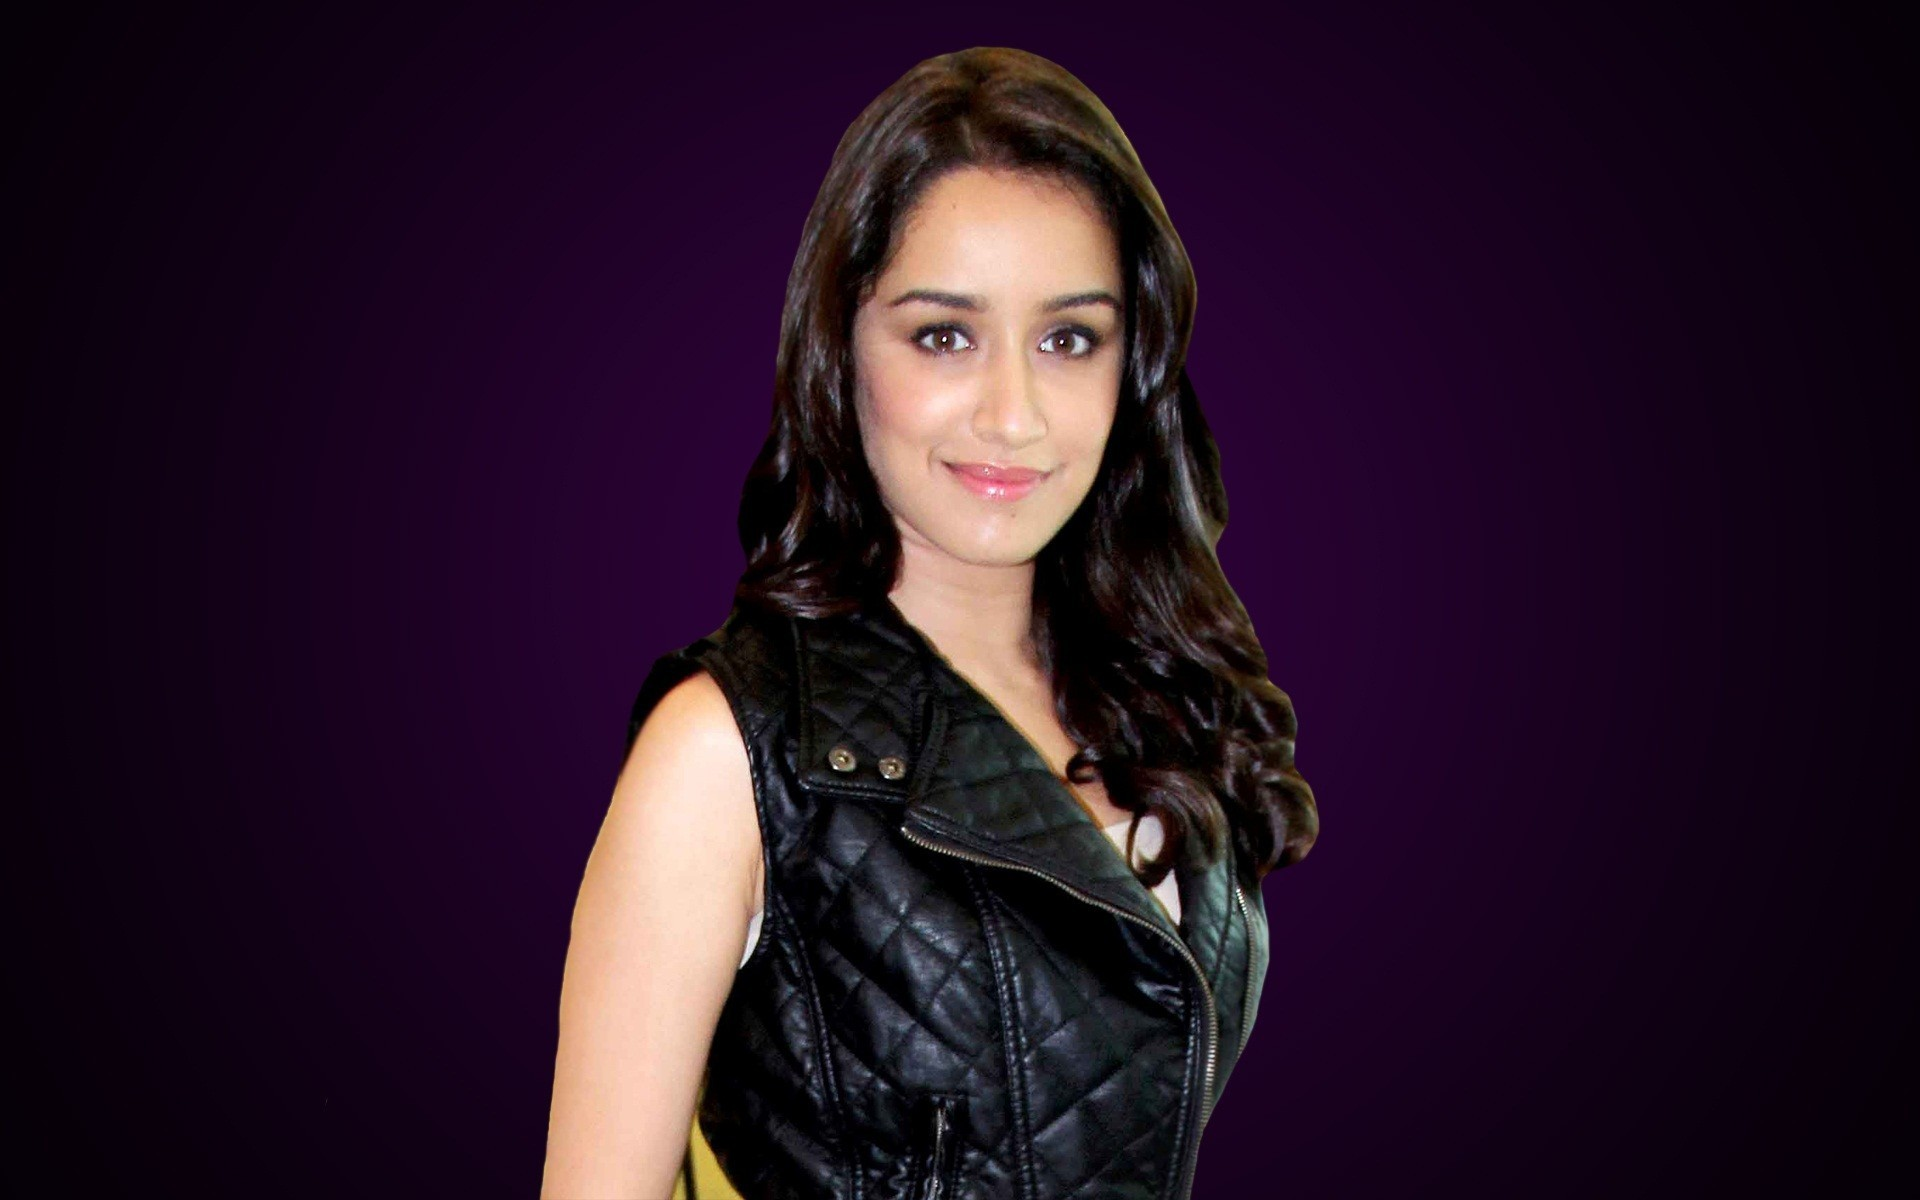 Shraddha Kapoor Bhatt Hd Wallpapers 1080p 2018 71 Images